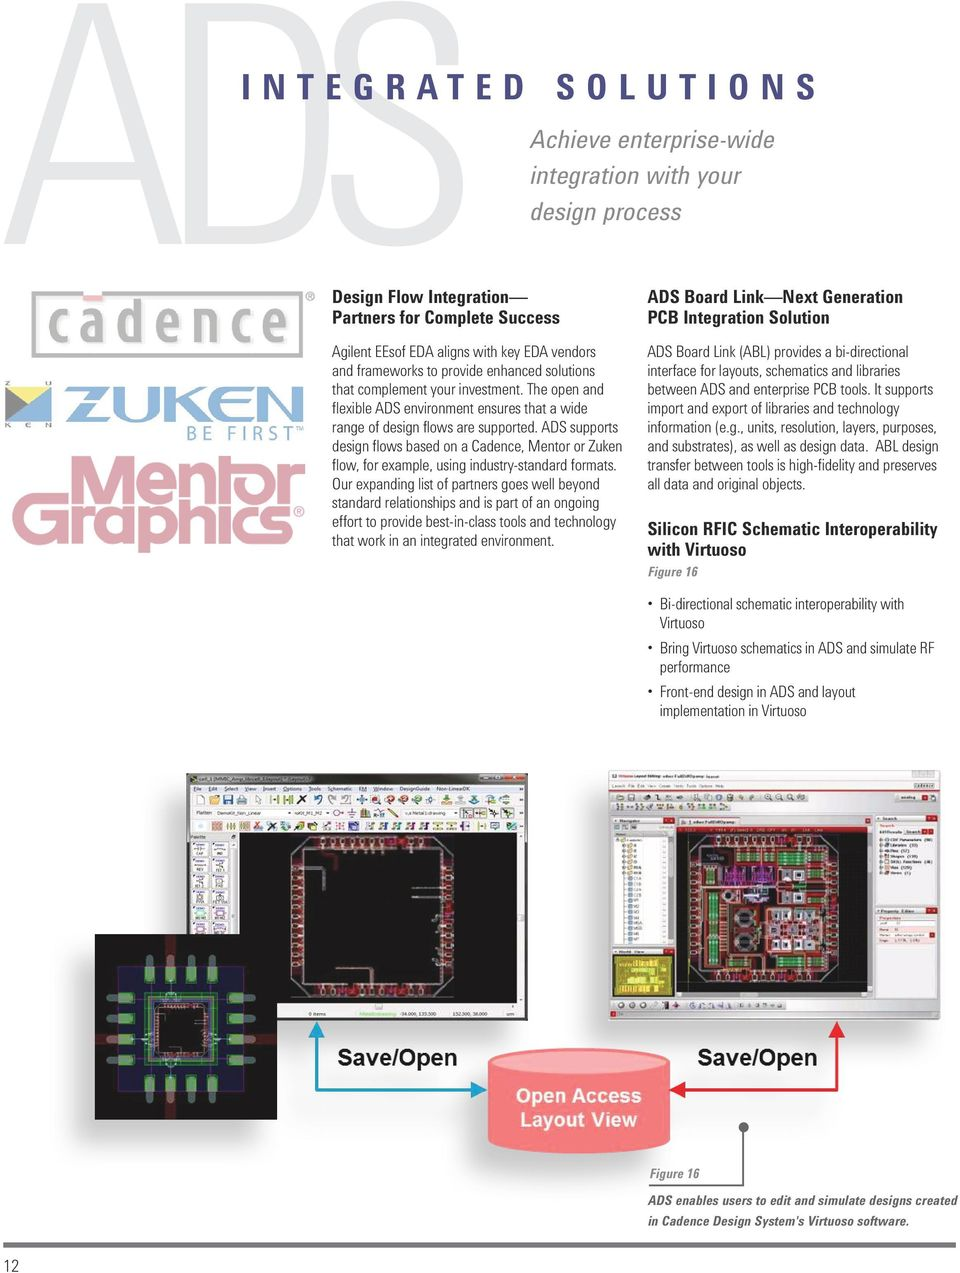 Advanced Design System Pdf Free Circuit Simulatorcircuit And Simulation Software List Ads Supports Flows Based On A Cadence Mentor Or Zuken Flow For Example